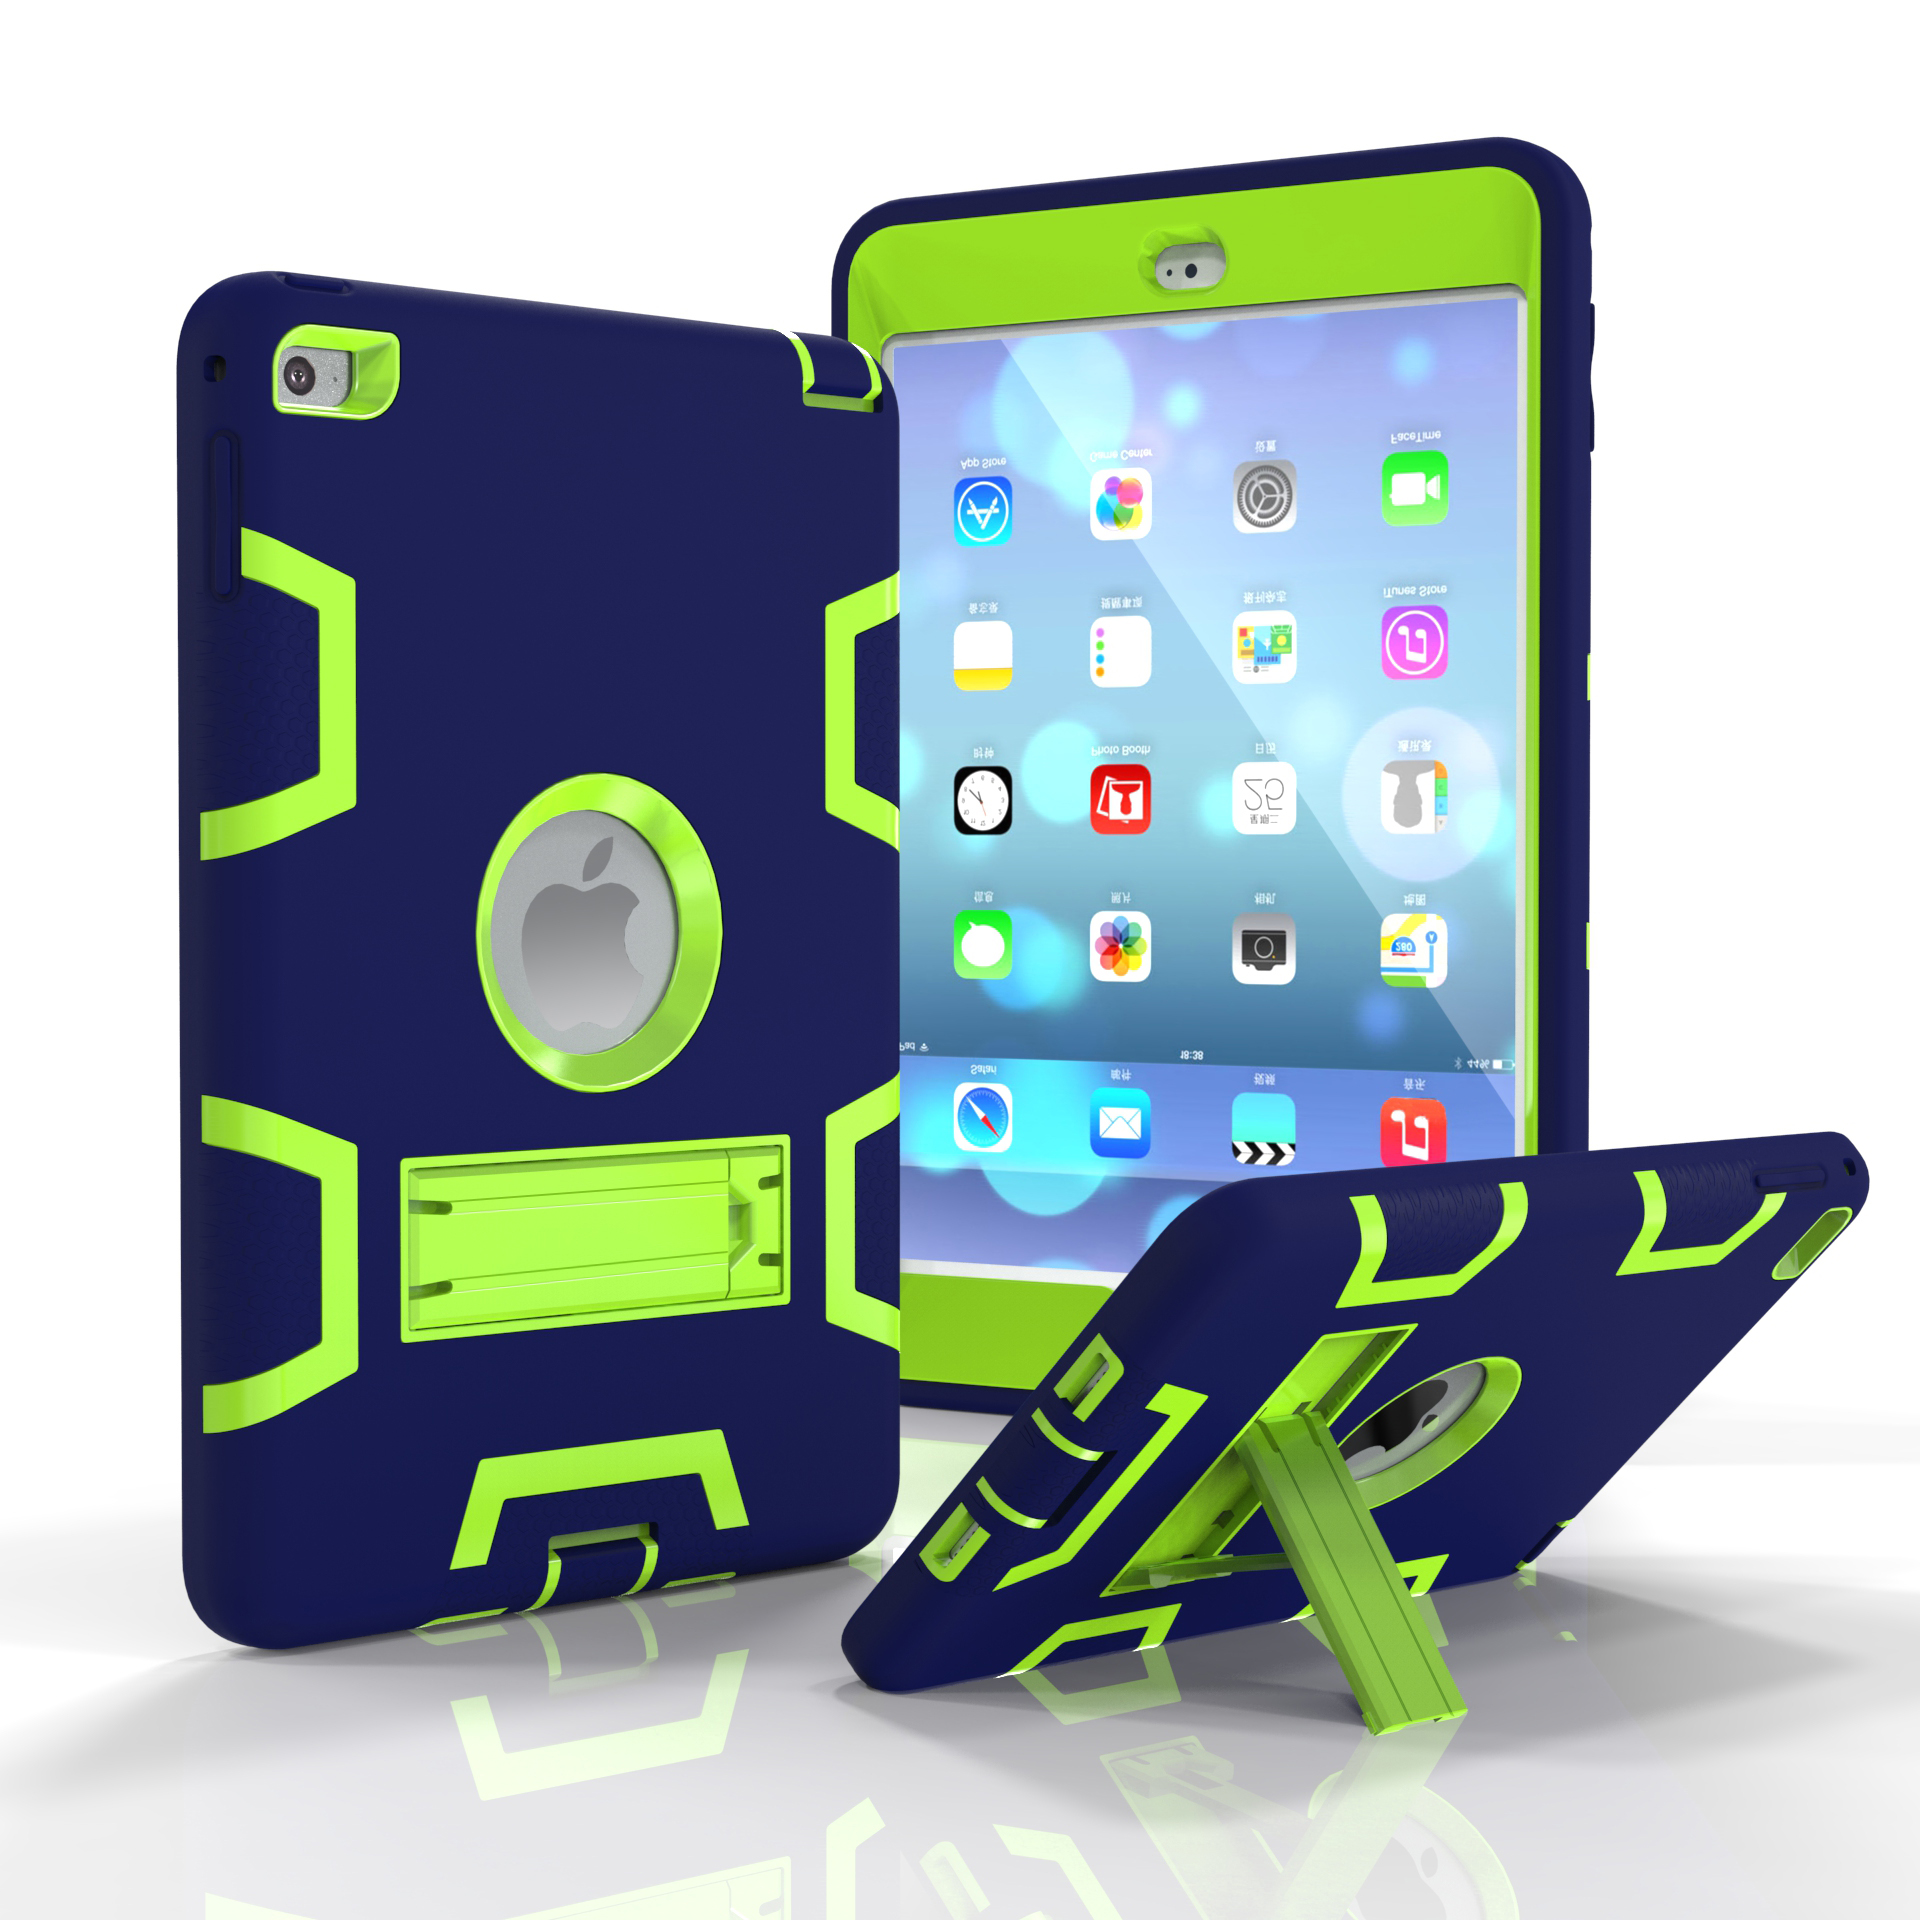 For IPAD MINI 4 PC+ Silicone Hit Color Armor Case Tri-proof Shockproof Dustproof Anti-fall Protective Cover  Navy blue + yellow green